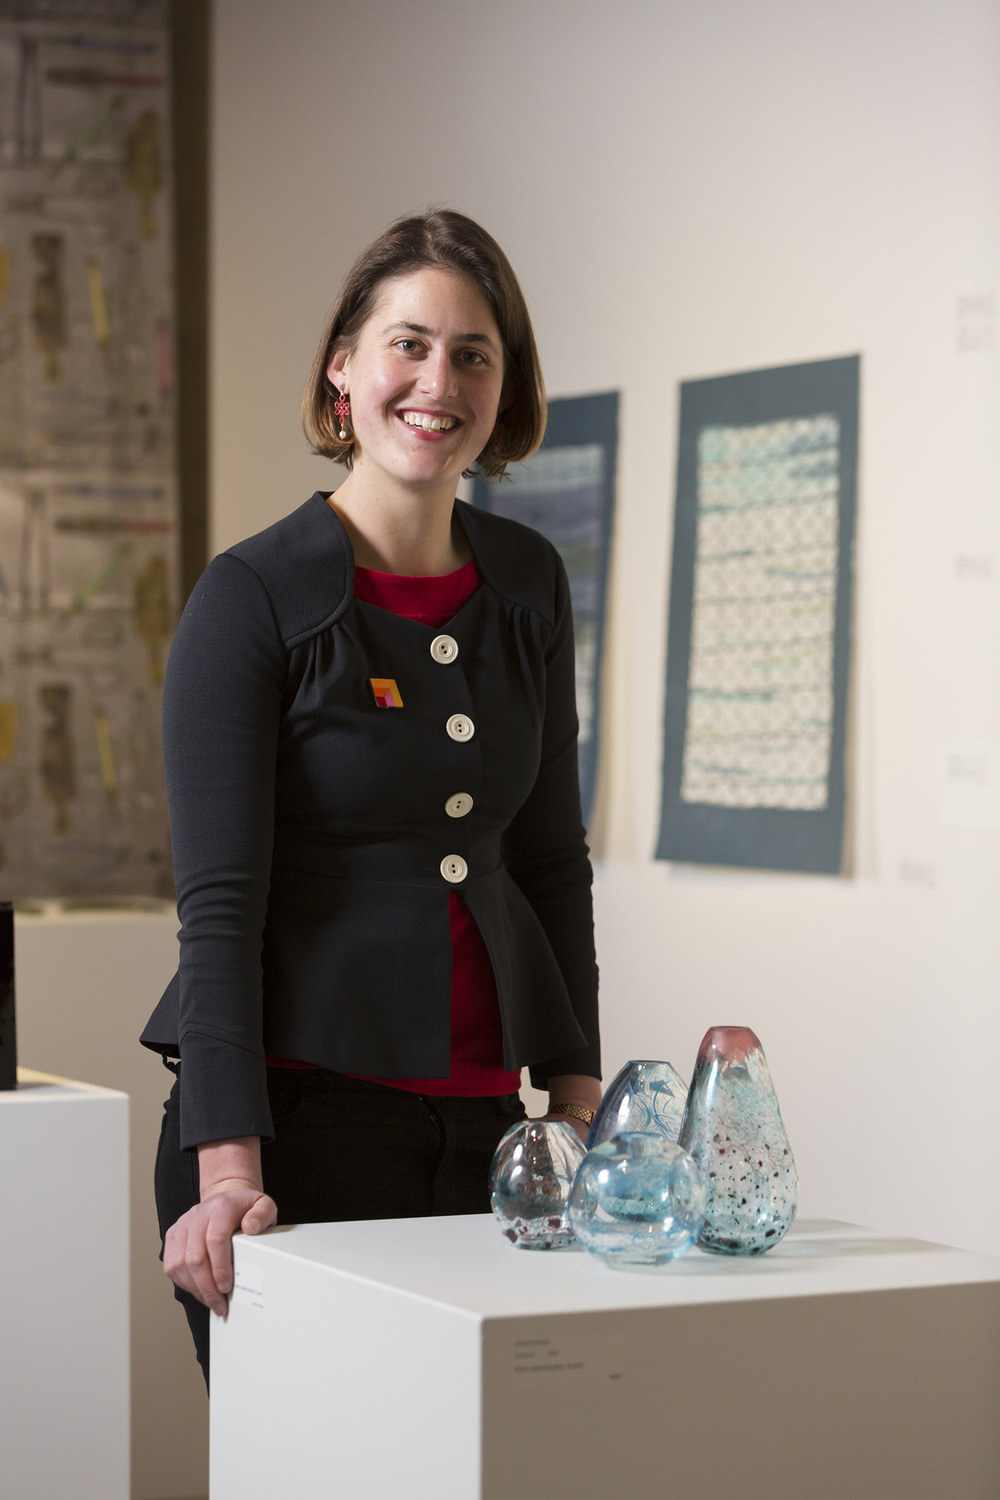 Annika Romeyn, 2014 (photo by Adam McGrath), Canberra Glassworks GLINT exhibition install